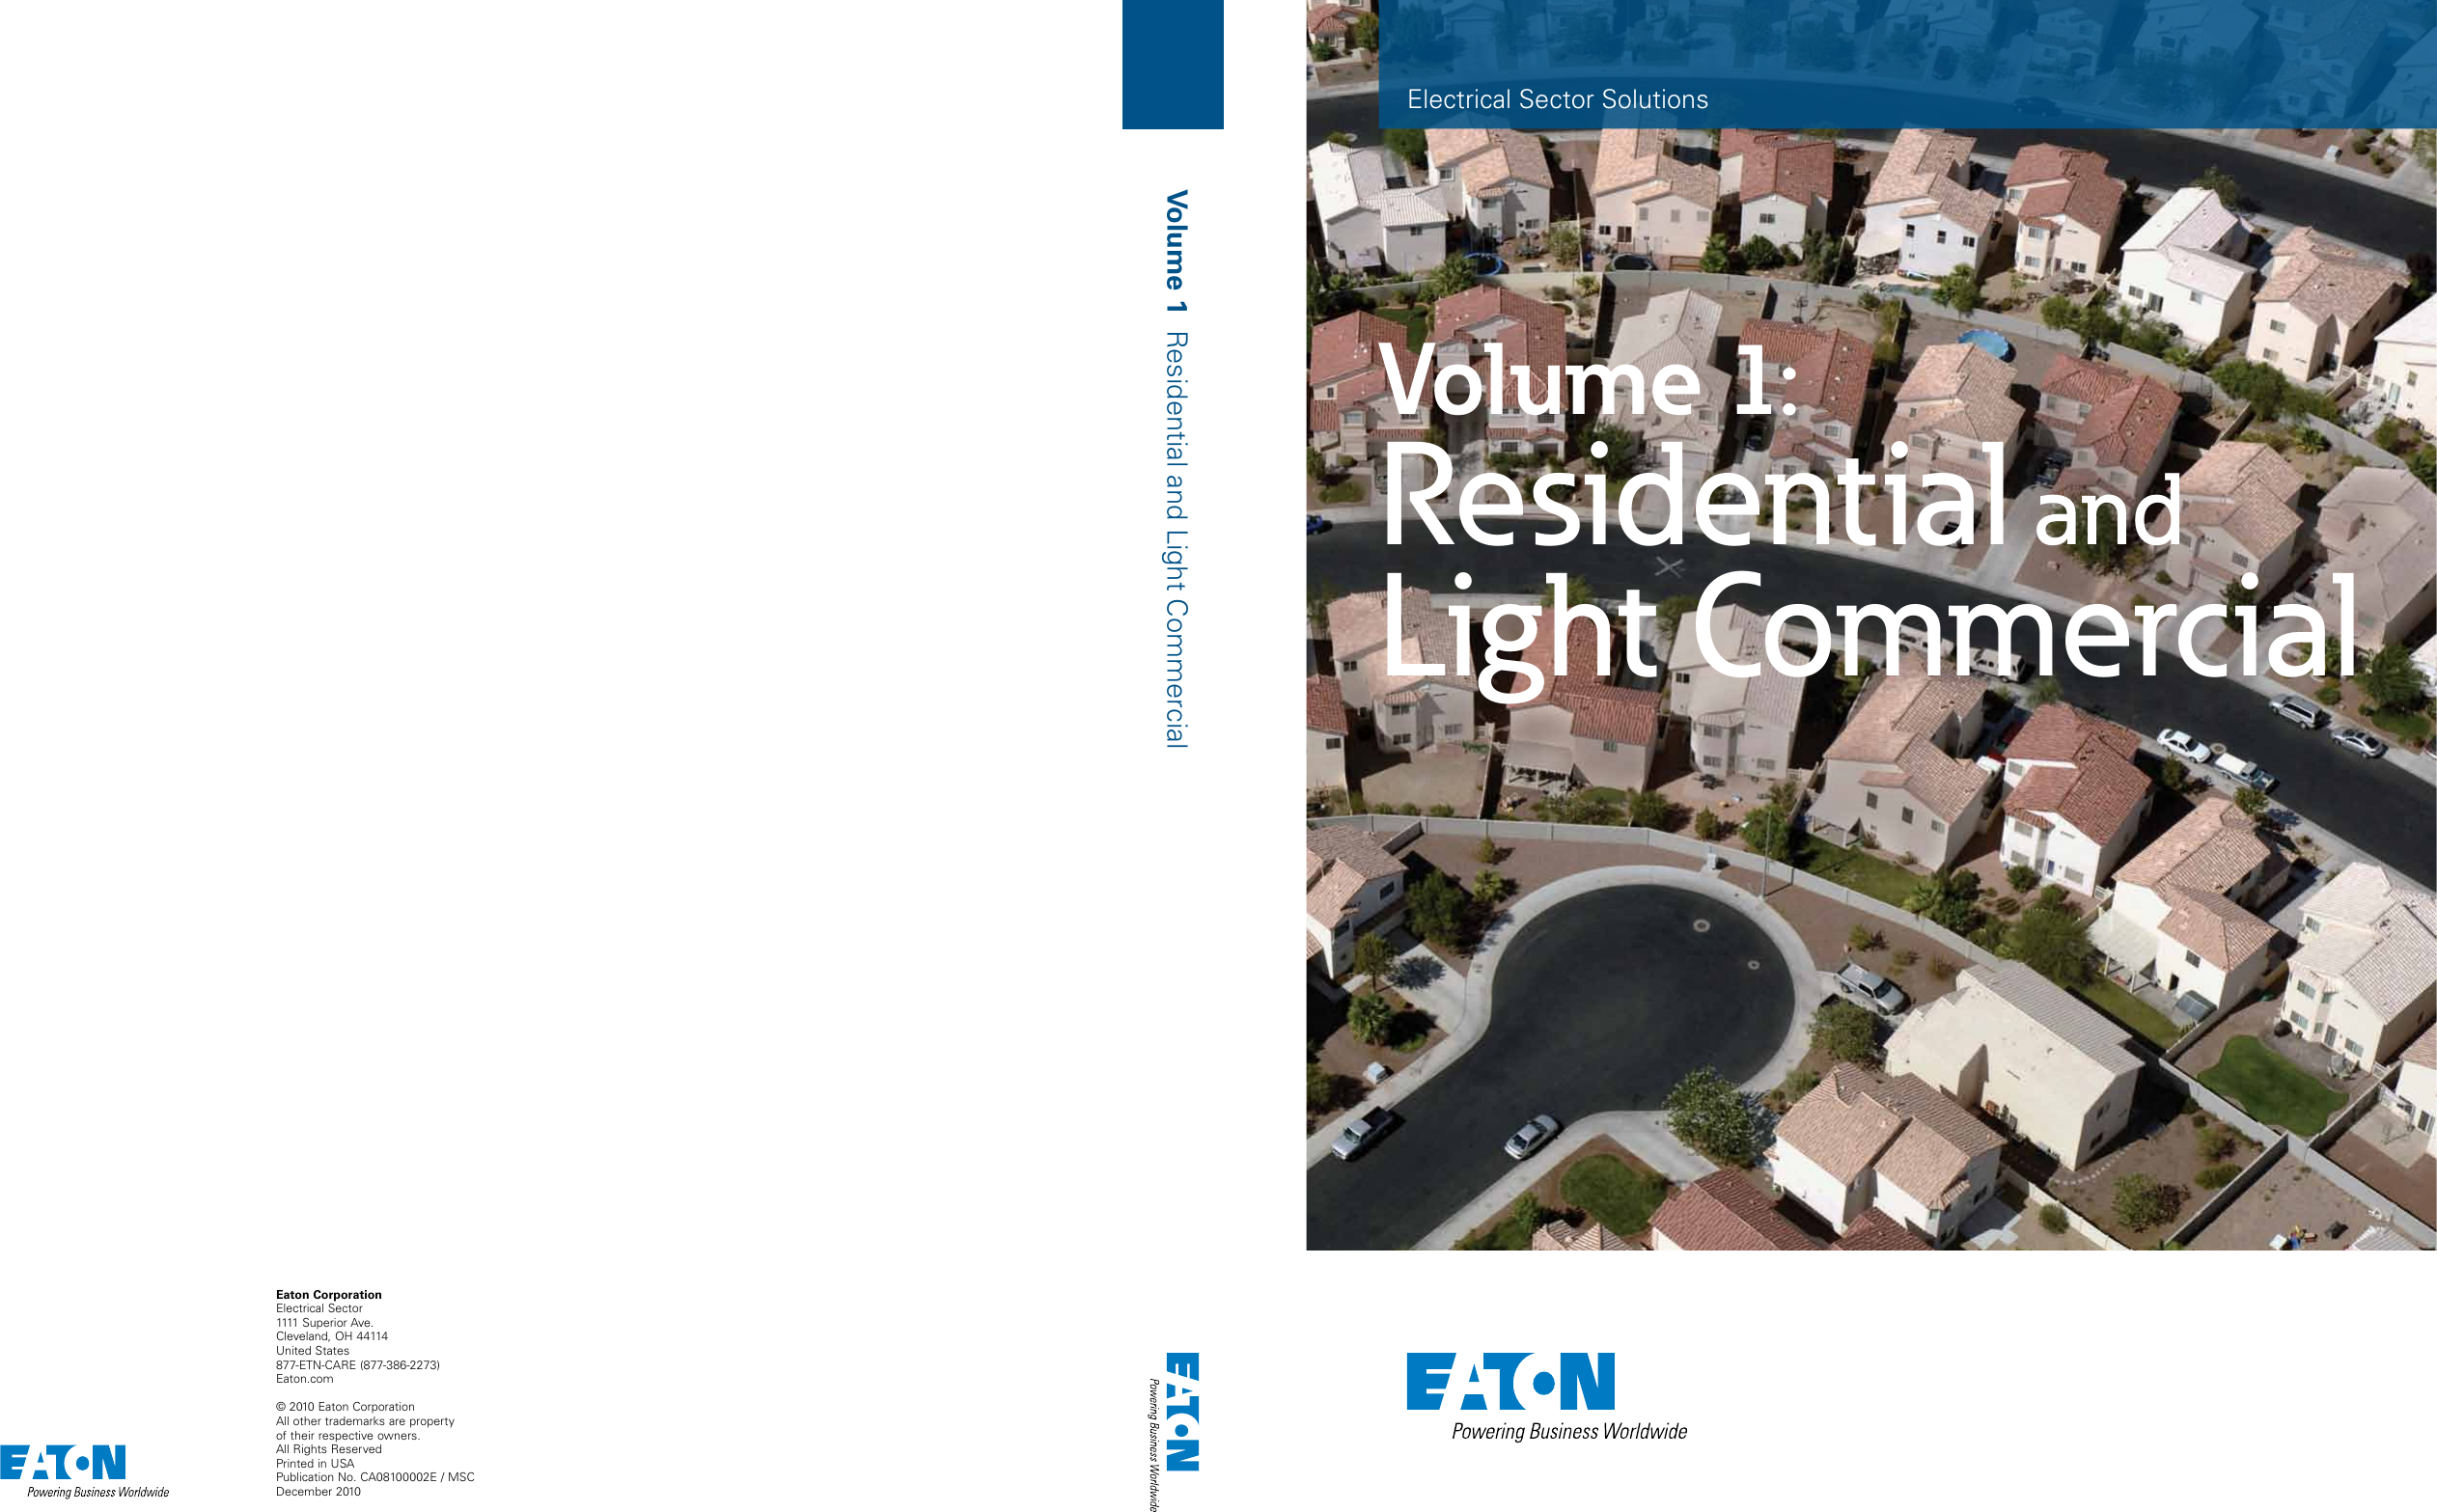 Volume 01residential And Light Commercial Rj12 Wiring Diagram For Pools